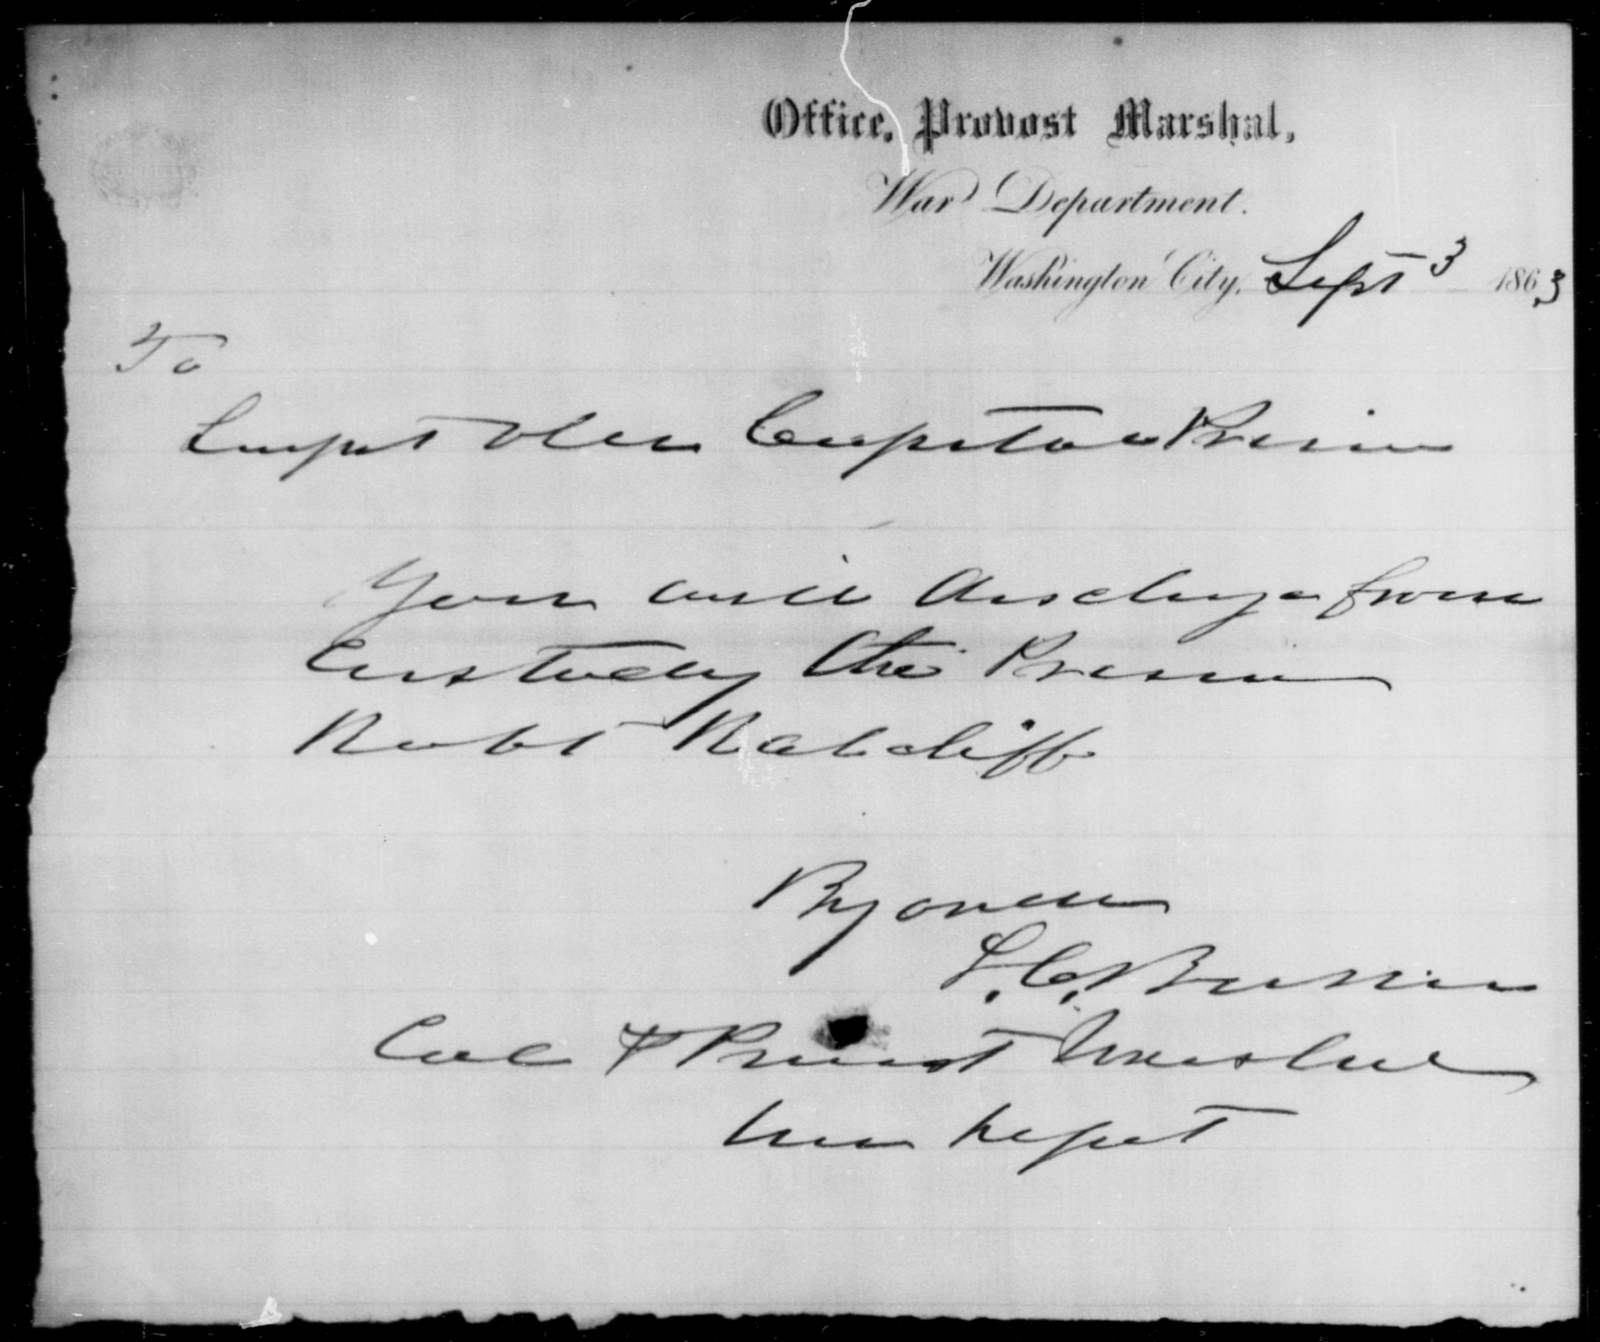 Ratcliff, Robt - State: [Blank] - Year: 1863